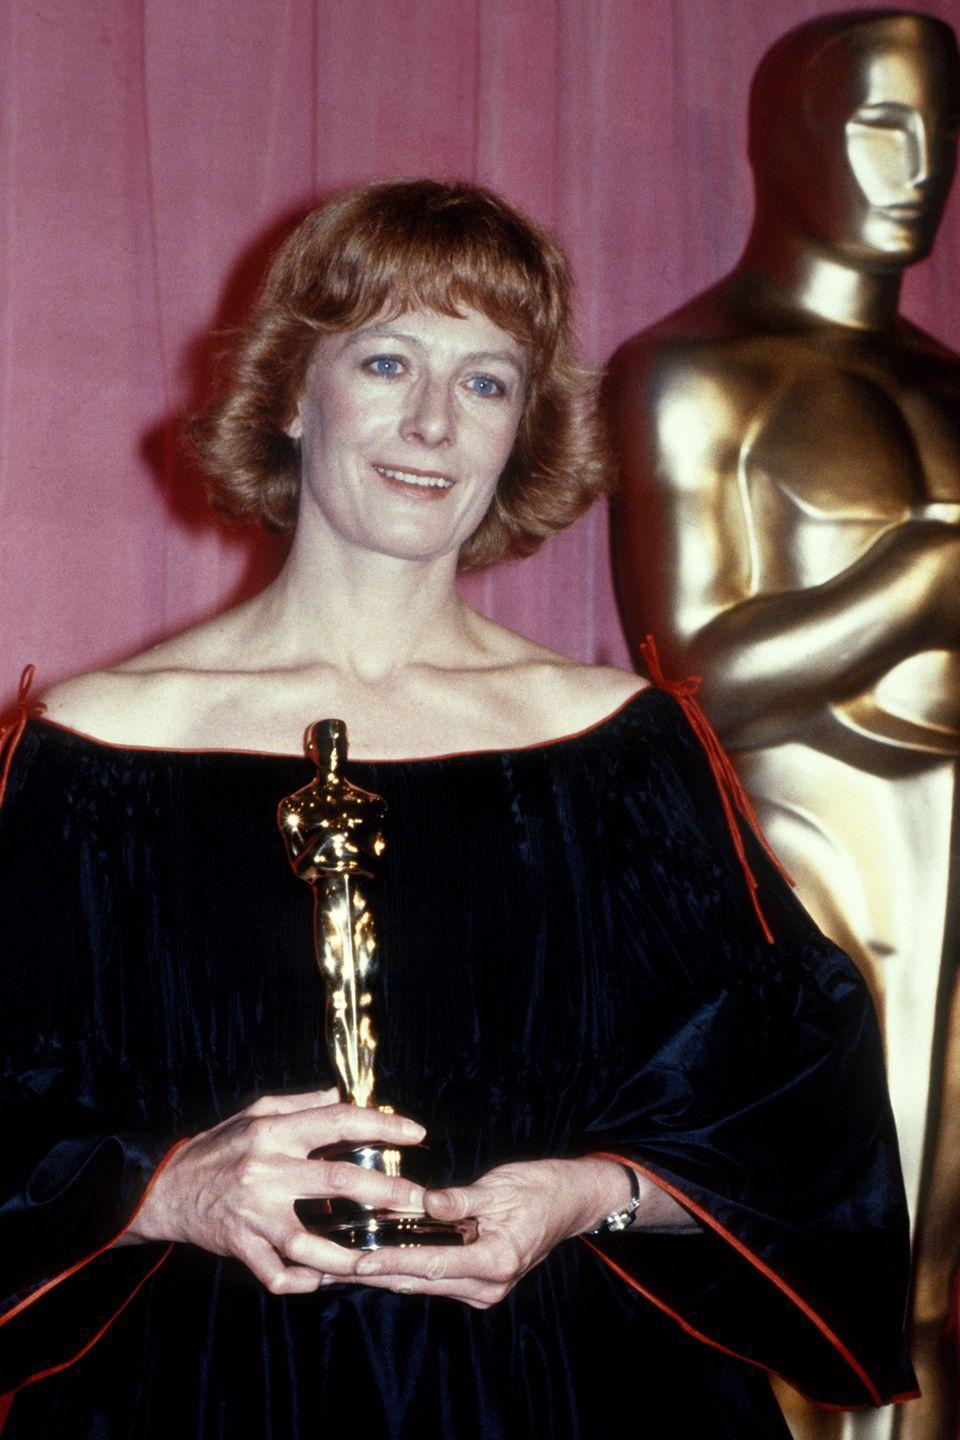 """<p>Redgrave won for her role in <em><a href=""""https://www.amazon.com/Julia-Jane-Fonda/dp/B07B37BGQ7/ref=sr_1_2?s=instant-video&ie=UTF8&qid=1547582719&sr=1-2&keywords=Julia&tag=syn-yahoo-20&ascsubtag=%5Bartid%7C10055.g.5148%5Bsrc%7Cyahoo-us"""" rel=""""nofollow noopener"""" target=""""_blank"""" data-ylk=""""slk:Julia"""" class=""""link rapid-noclick-resp"""">Julia</a></em><span class=""""redactor-invisible-space"""">, which was based on a memoir by Lillian Hellman about her friend who helped fight Nazis during WWII. But many thought that Hellman had fabricated the entire story. To further complicate things, Redgrave had recently produced and narrated a pro-Palestine documentary. This angered many people, who called Redgrave anti-Semitic and encouraged the Academy not to vote for her.</span></p>"""